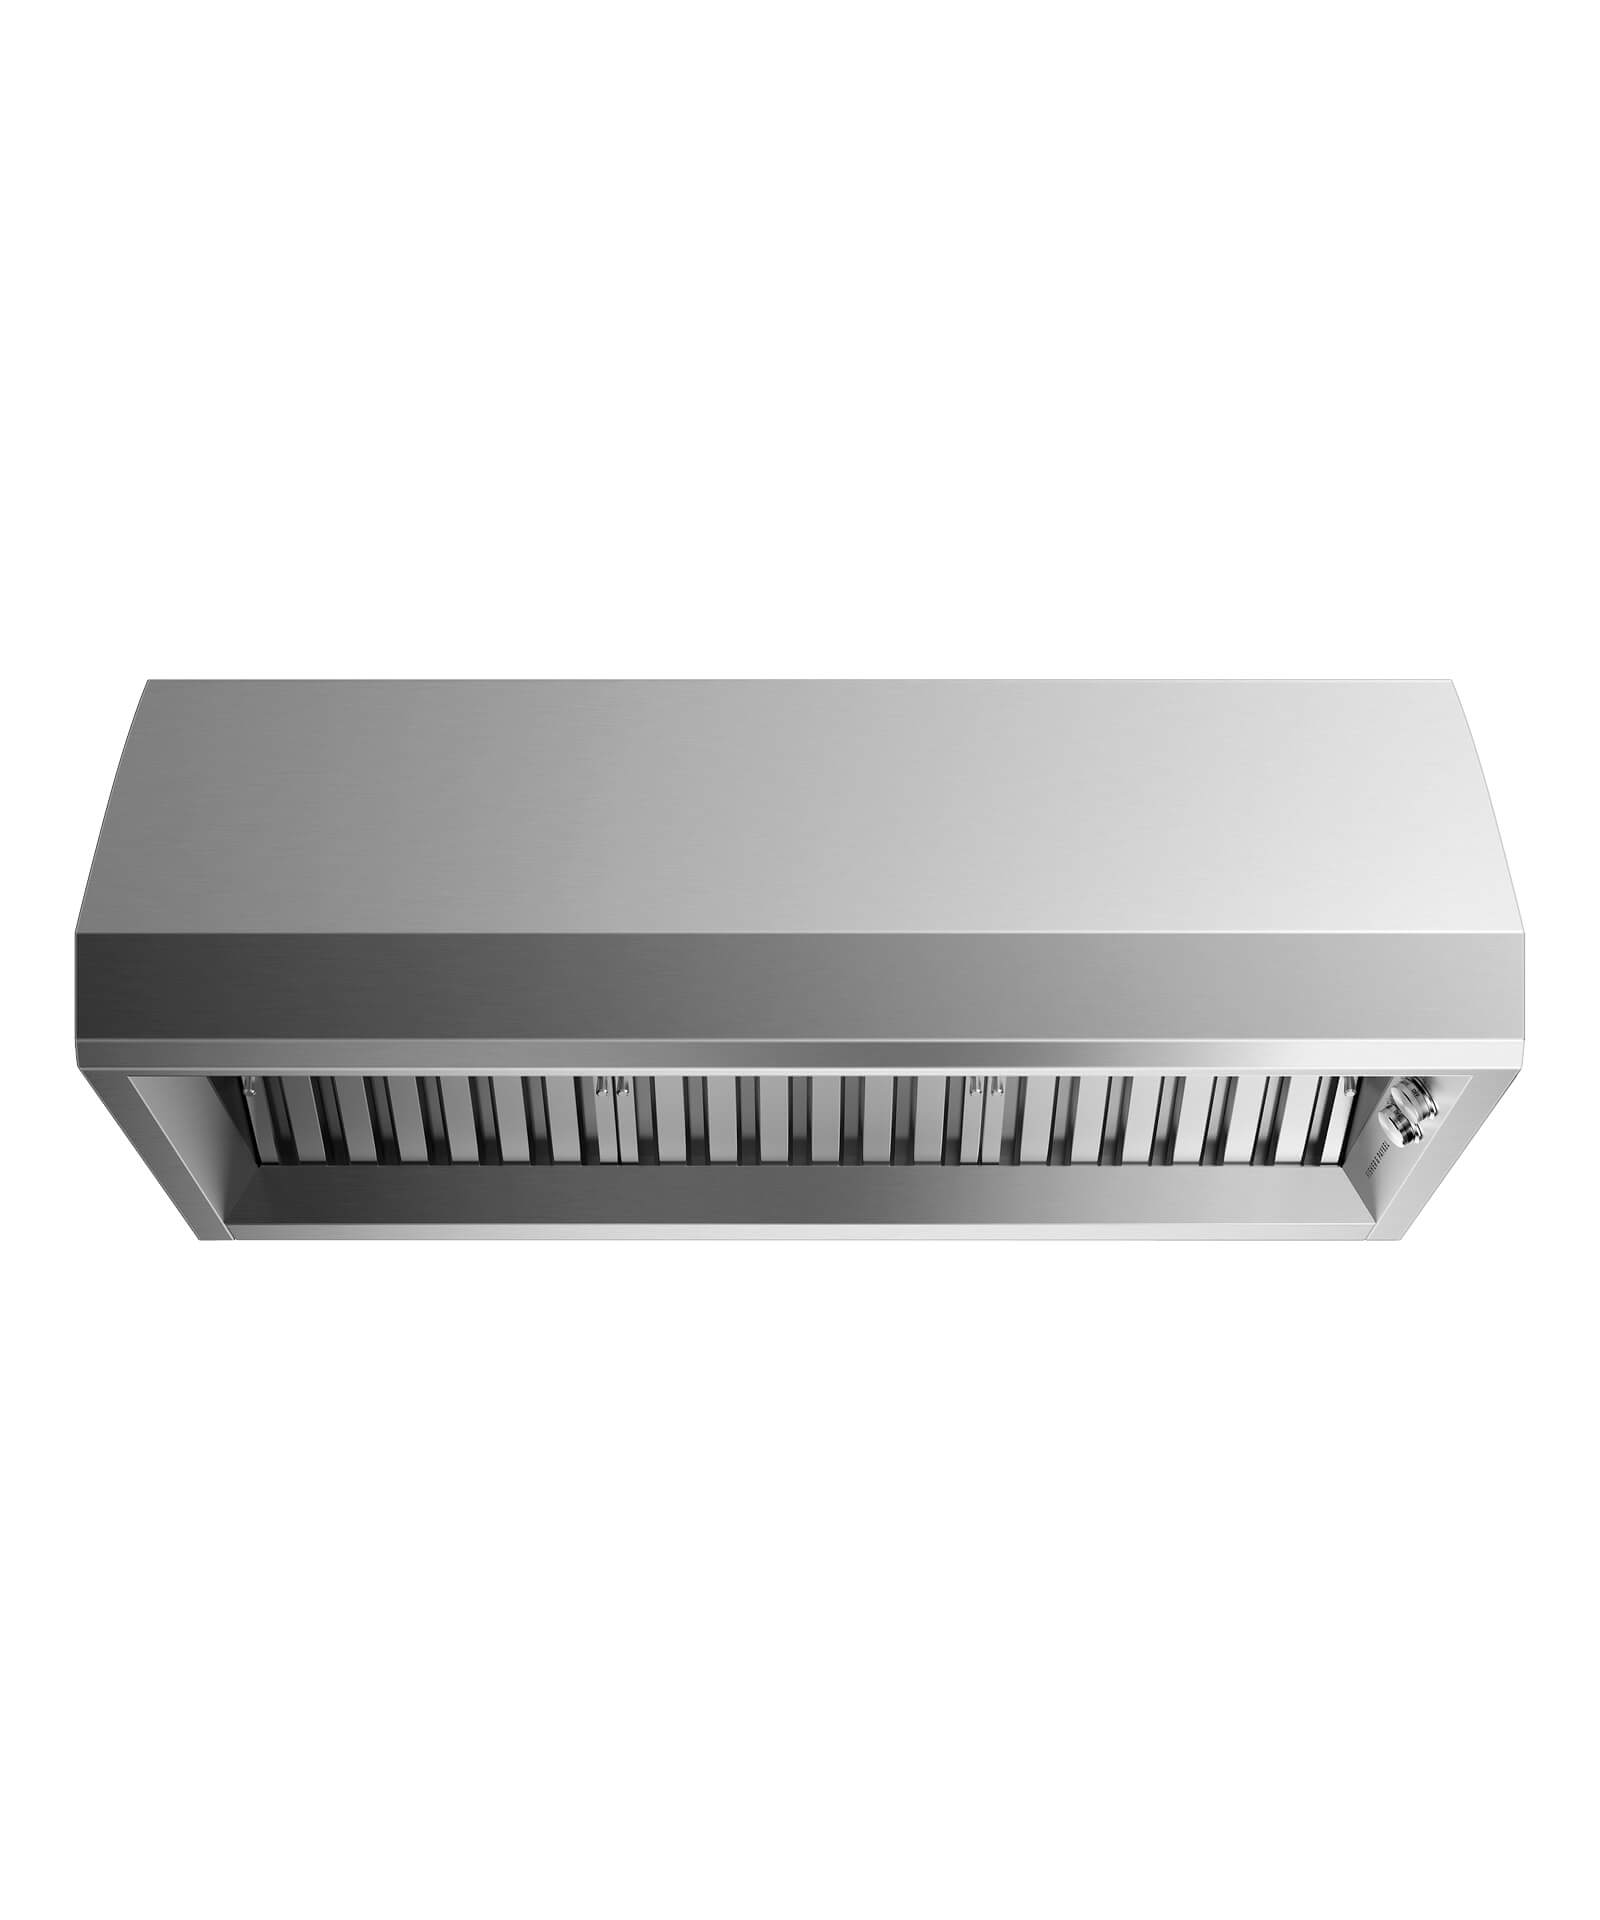 "Fisher and Paykel Professional Range Hood, 48"", Dual Blower"